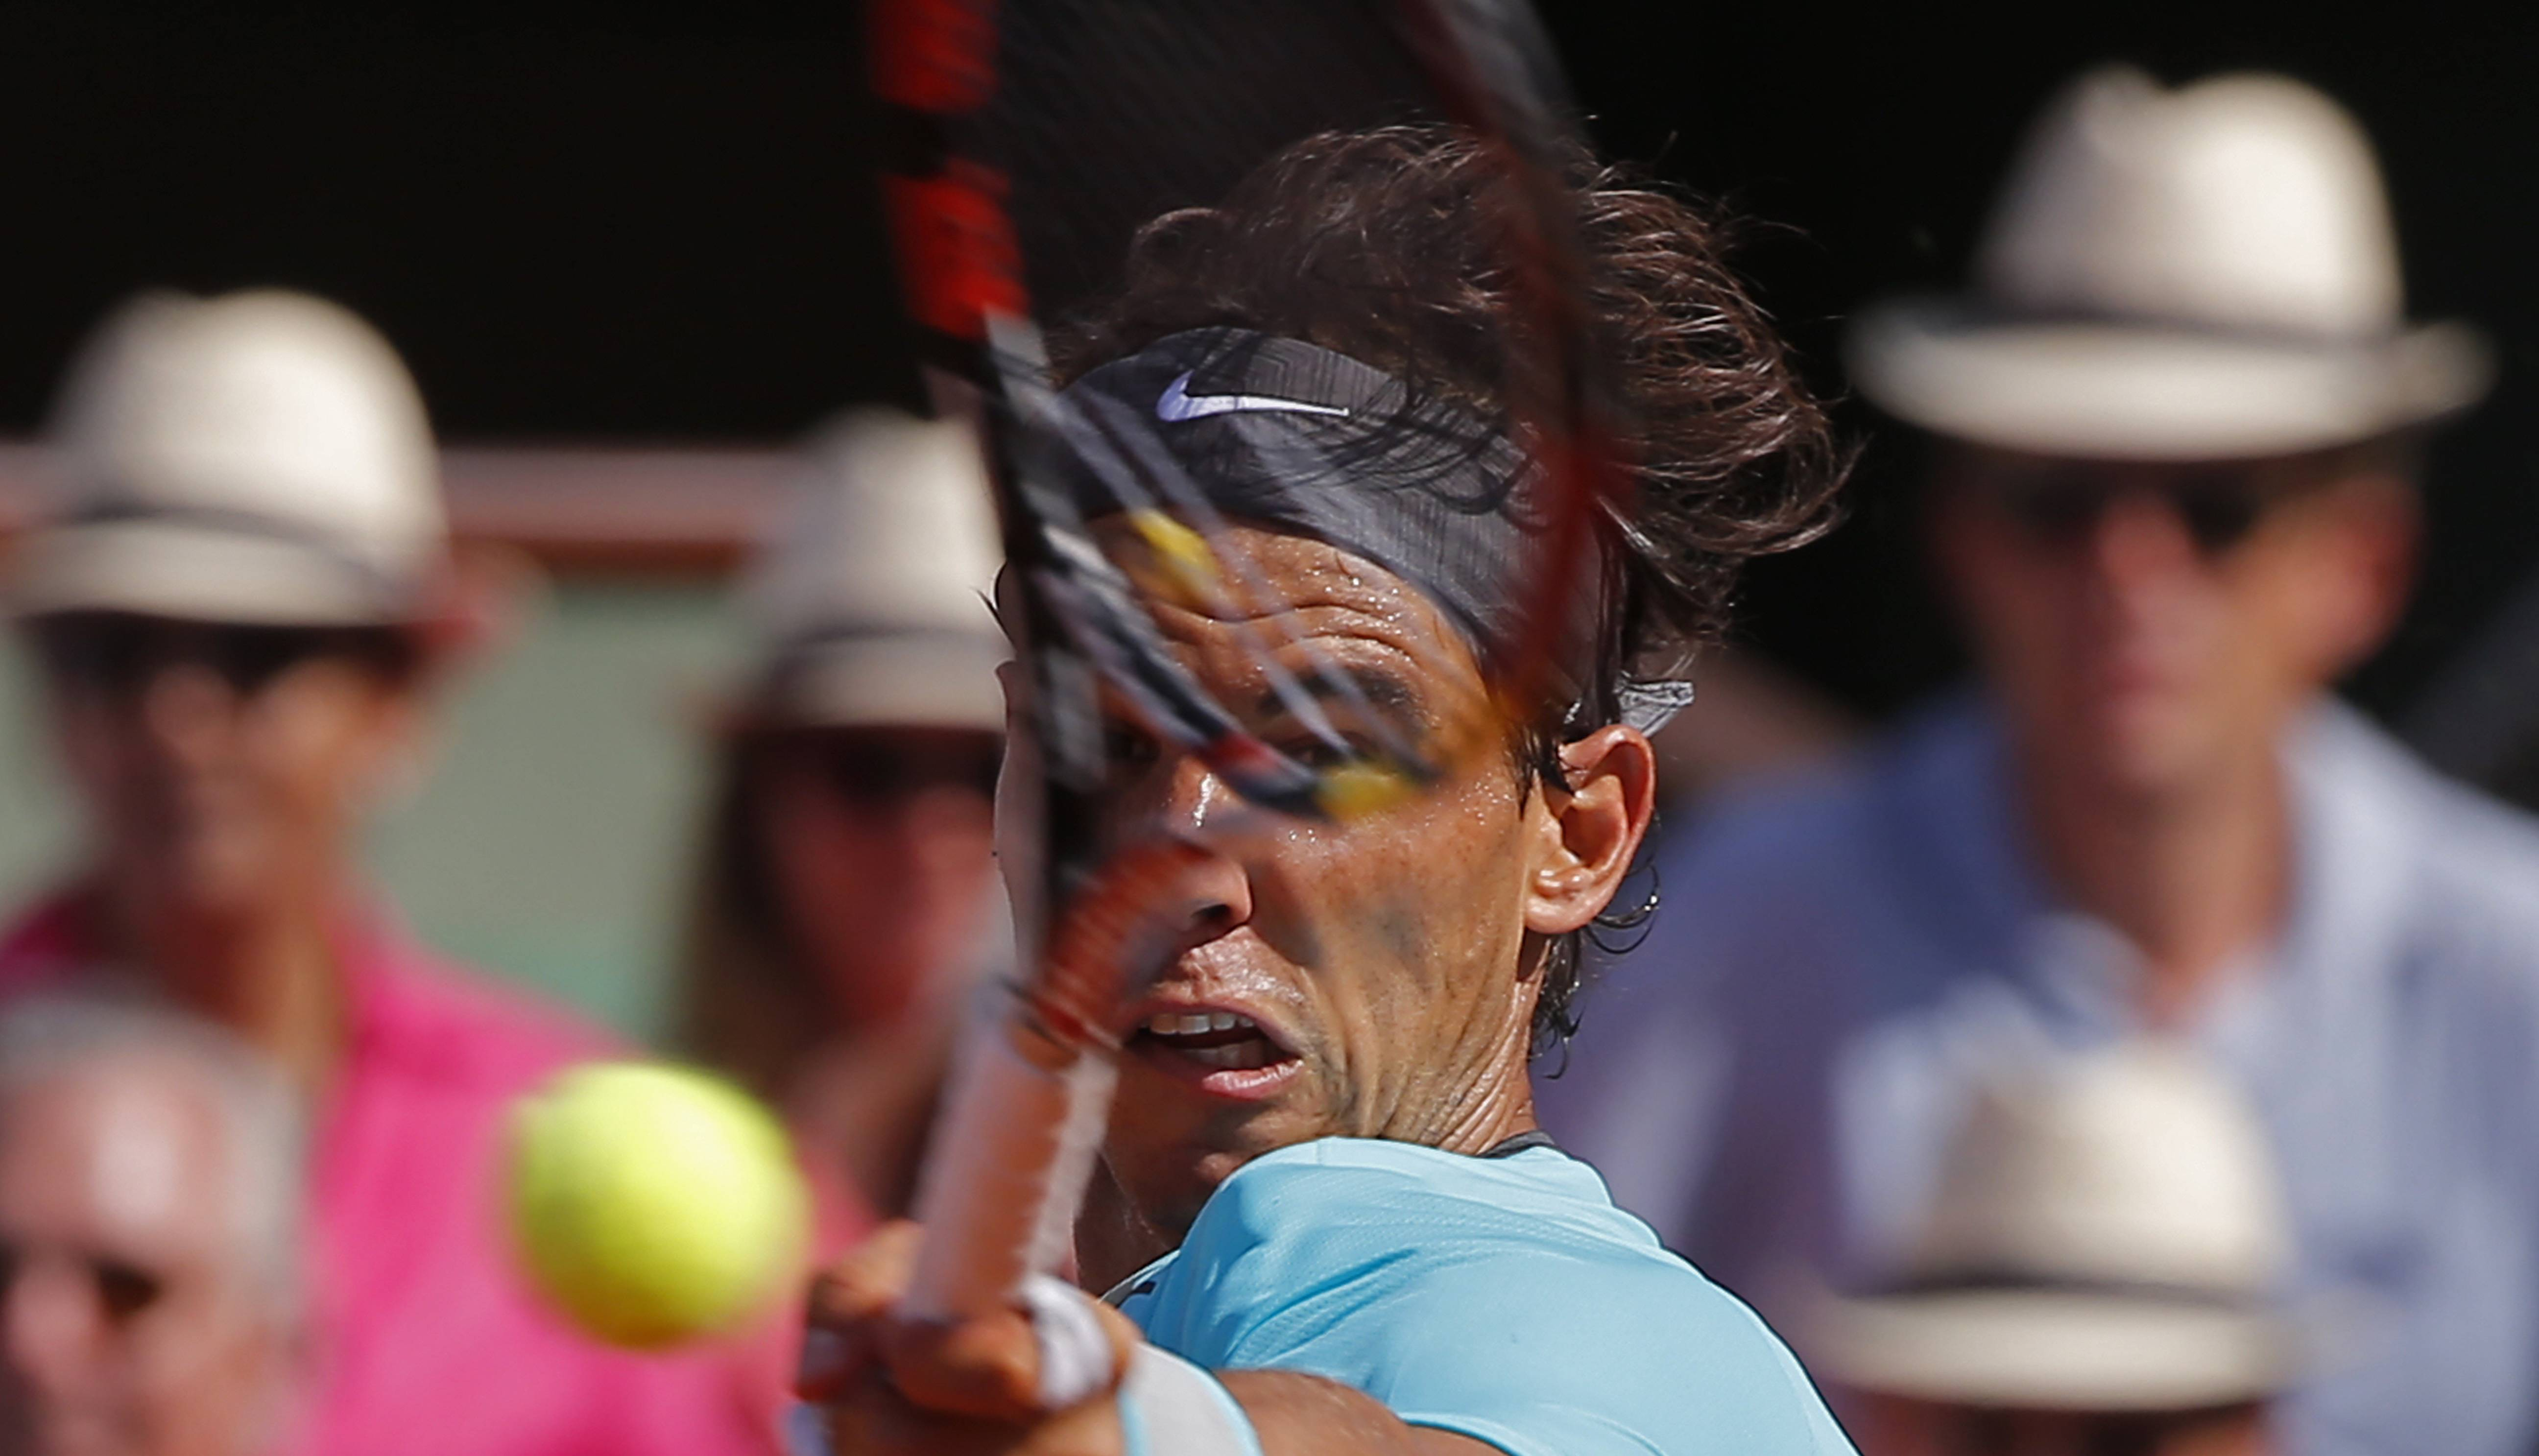 Spain's Rafael Nadal returns the ball during the semifinal match of the French Open tennis tournament against Britain's Andy Murray at the Roland Garros stadium, in Paris, France, Friday, June 6, 2014.